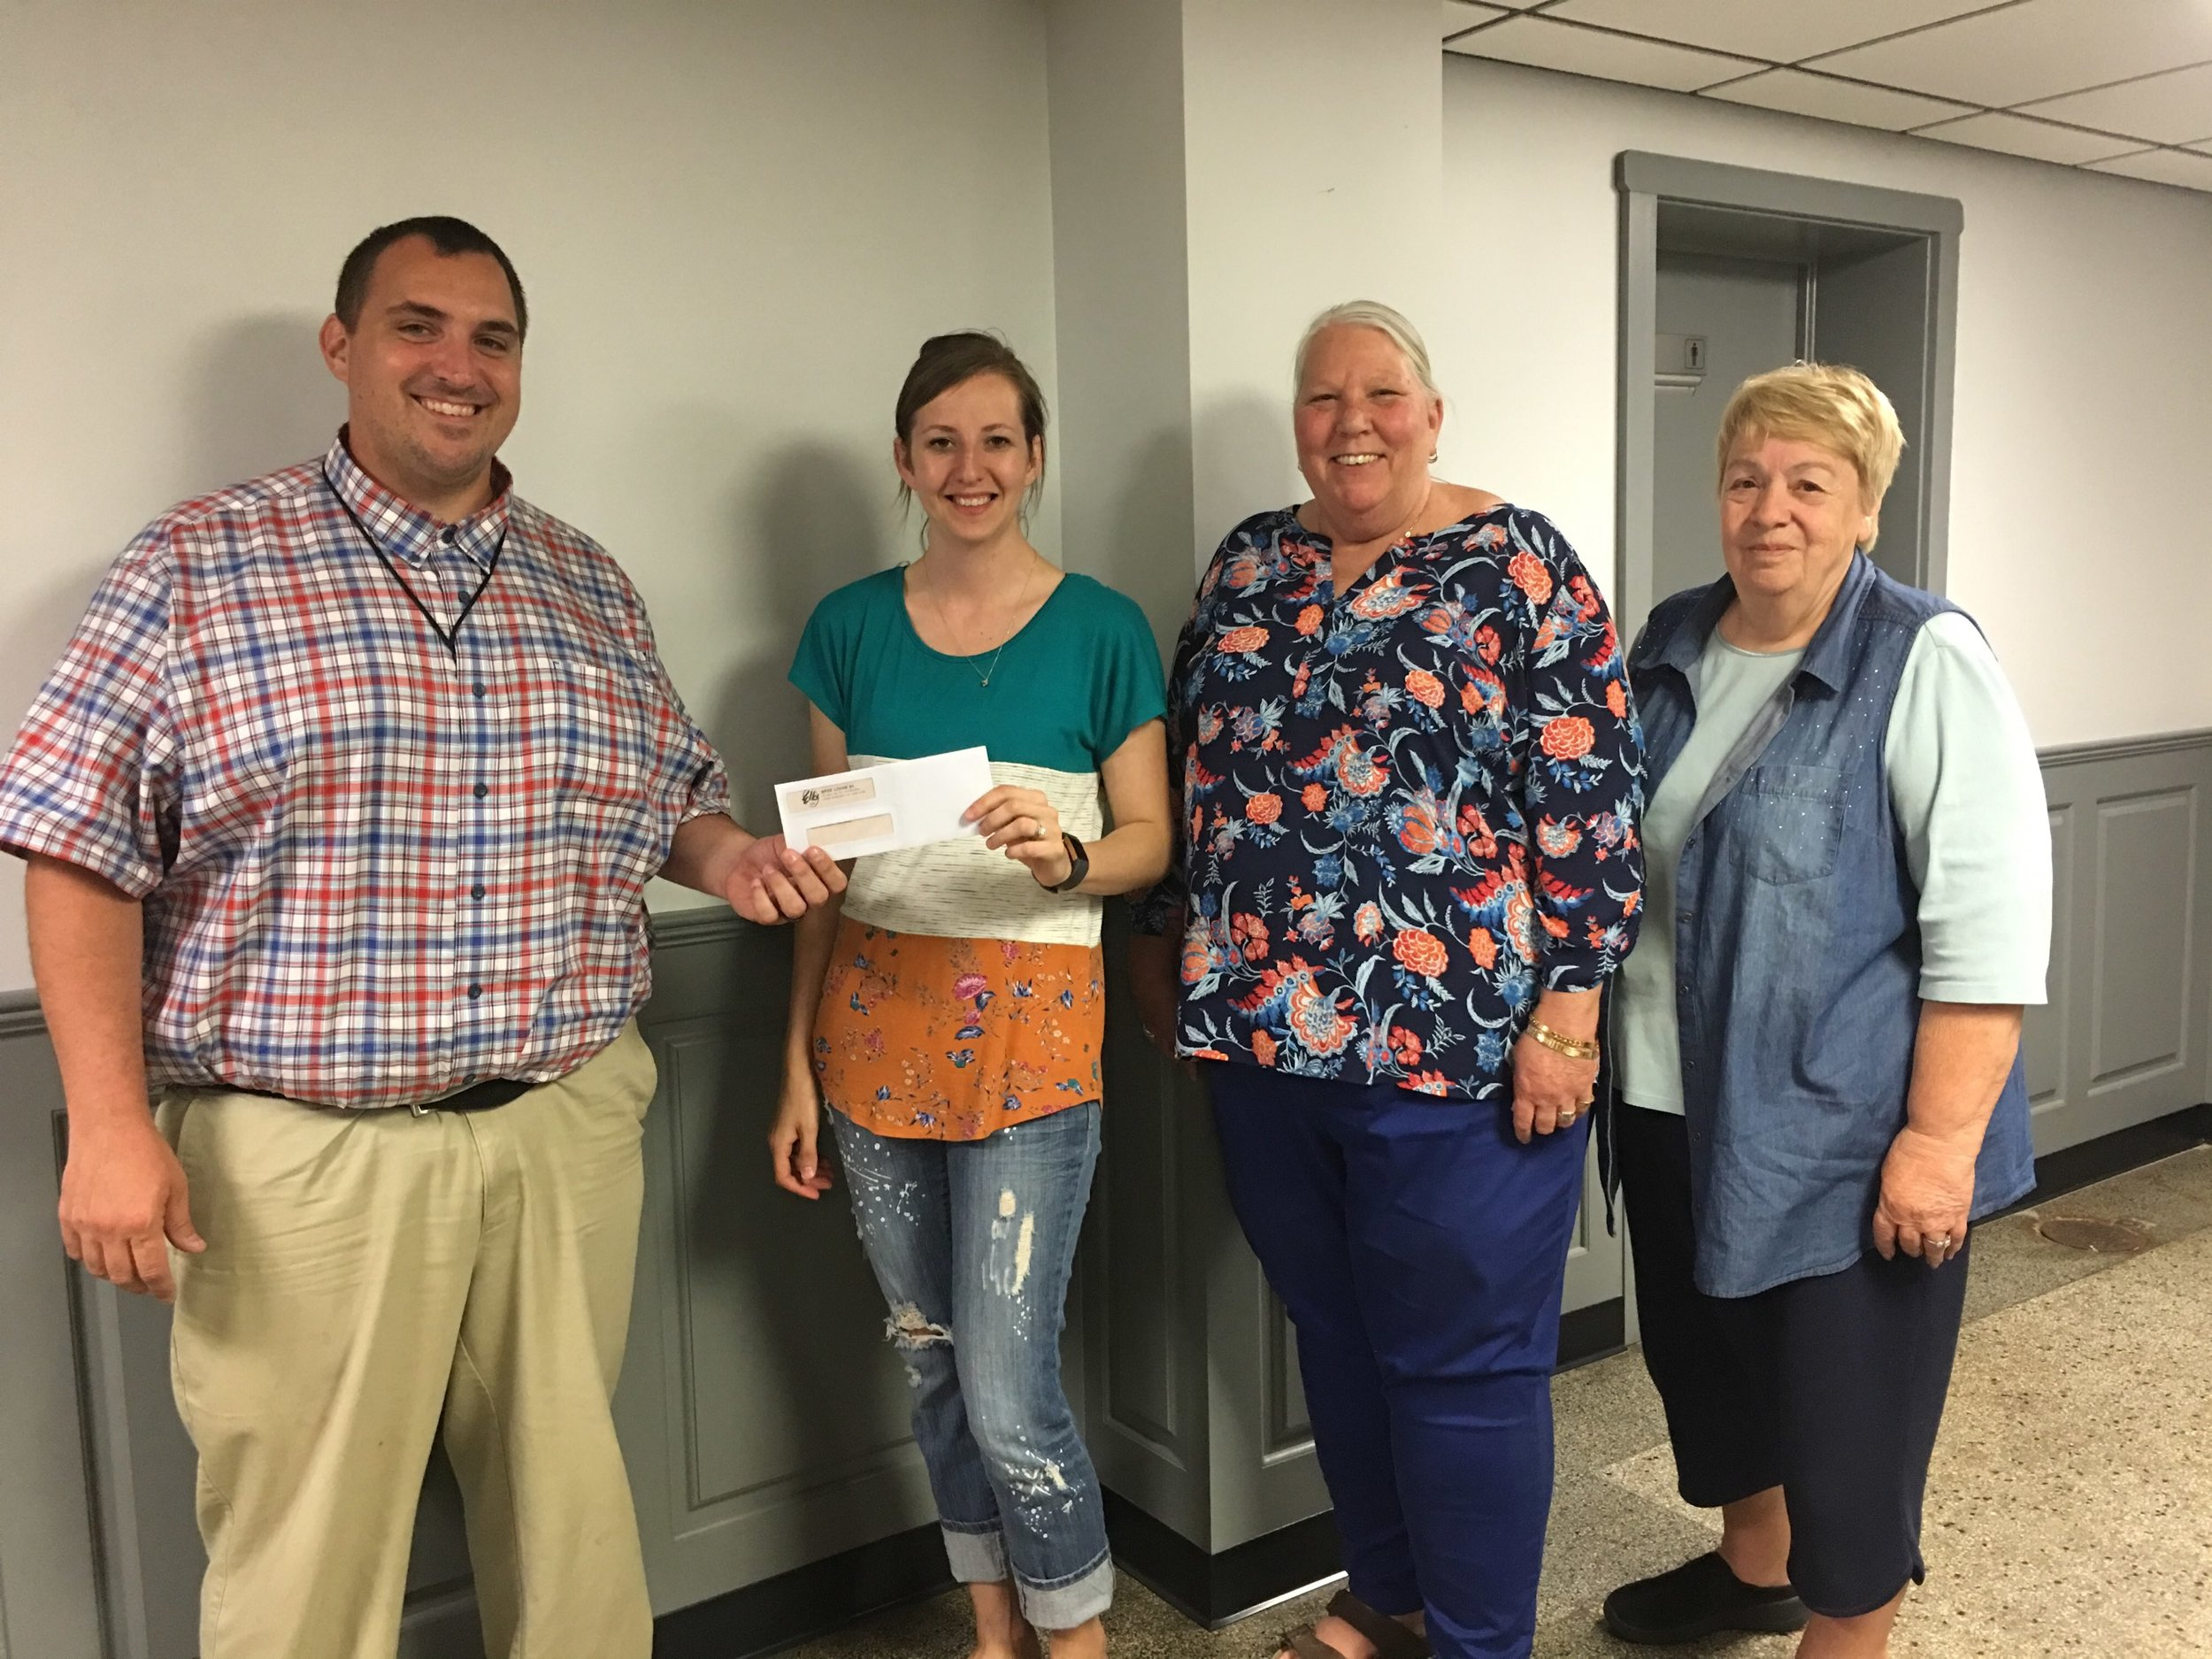 Presenting the check to Justin Swartz and Anne Denman are Elks members Megan Rowe and Donna Swavel.